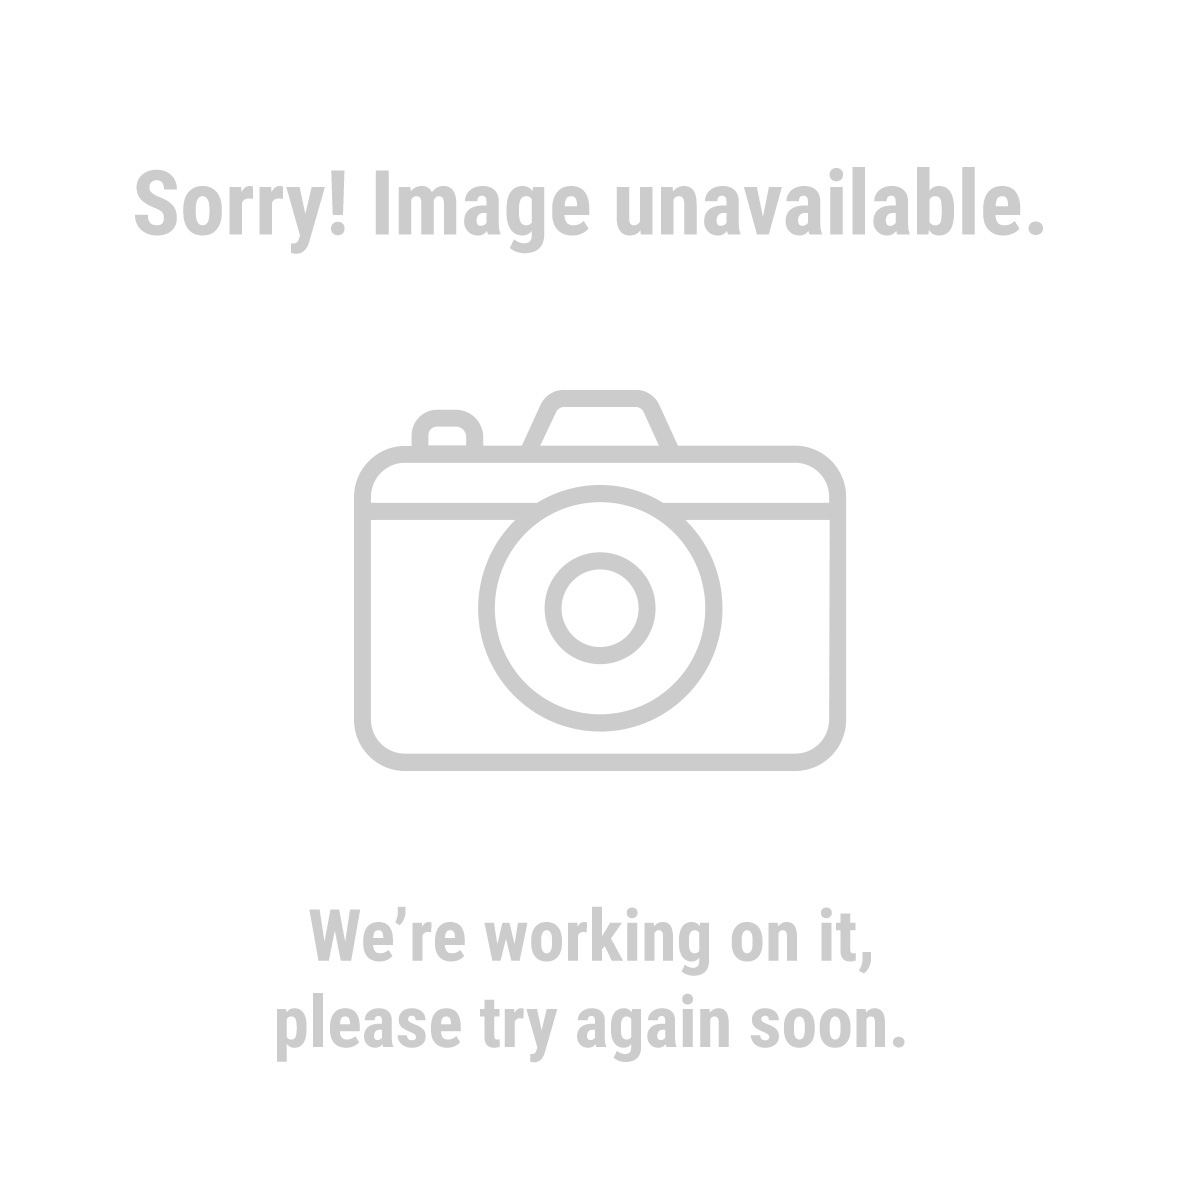 air compressor Shop air compressors in the air tools & compressors section of lowescom find quality air compressors online or in store.